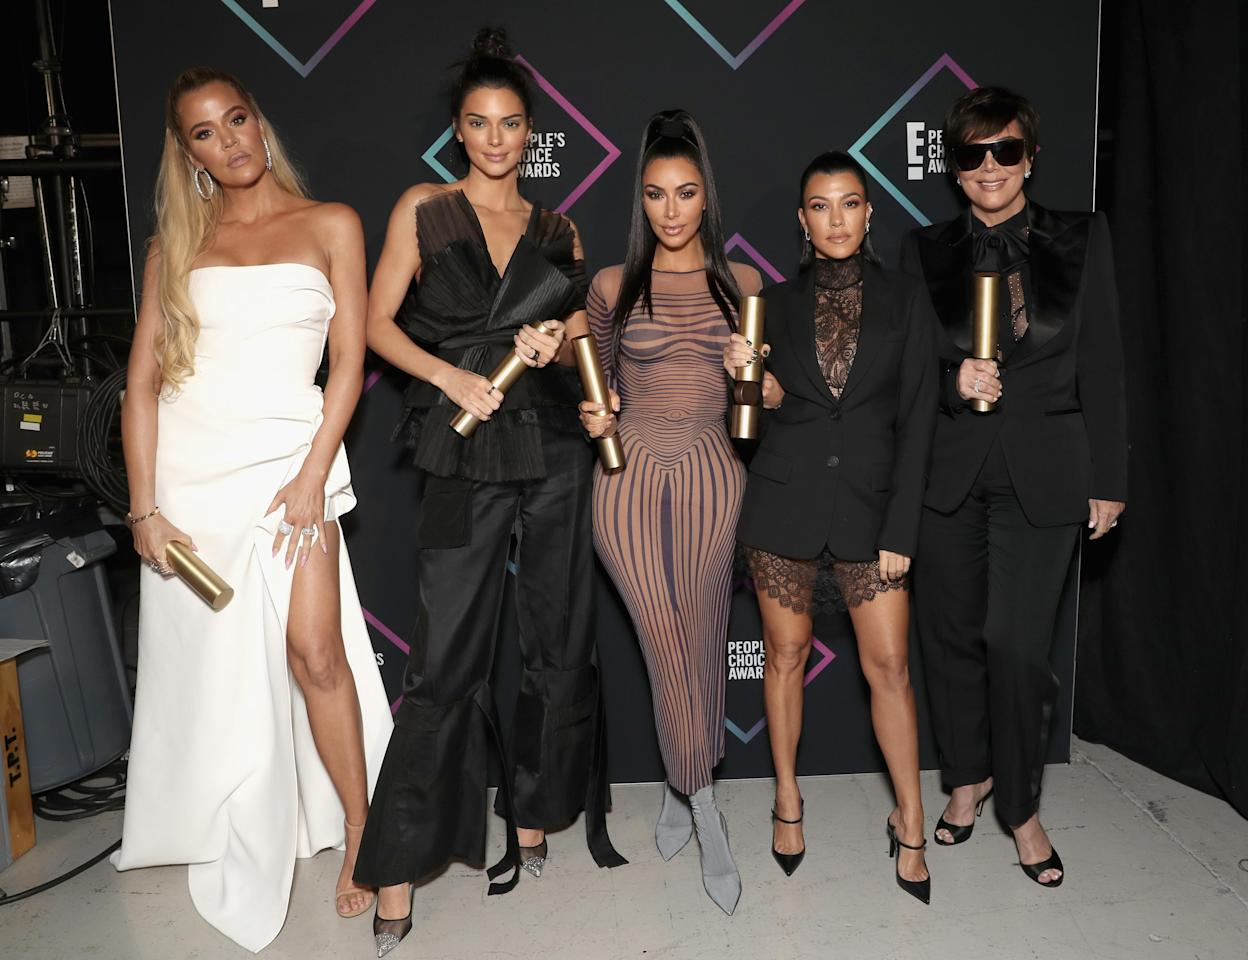 """<p>No celebrity list this millennium would be complete without the Kardashians. The gals (and guy) have their fingers in the food pot, too. Kris authored a 2014 cookbook (<a href=""""https://www.thedailymeal.com/eat/5-celebrity-cookbooks-failed-miserably?referrer=yahoo&category=beauty_food&include_utm=1&utm_medium=referral&utm_source=yahoo&utm_campaign=feed"""">though it didn't do very well</a>), Kourtney <a href=""""https://www.thedailymeal.com/entertain/kourtney-kardashians-kitchen-hack/041719?referrer=yahoo&category=beauty_food&include_utm=1&utm_medium=referral&utm_source=yahoo&utm_campaign=feed"""">launched lifestyle brand Poosh</a> in 2019, and Kim sparked a <a href=""""https://www.thedailymeal.com/eat/everyone-shocked-celebrities-had-double-date-waffle-house?referrer=yahoo&category=beauty_food&include_utm=1&utm_medium=referral&utm_source=yahoo&utm_campaign=feed"""">national Waffle House craving with a double date in 2015</a>.</p>"""